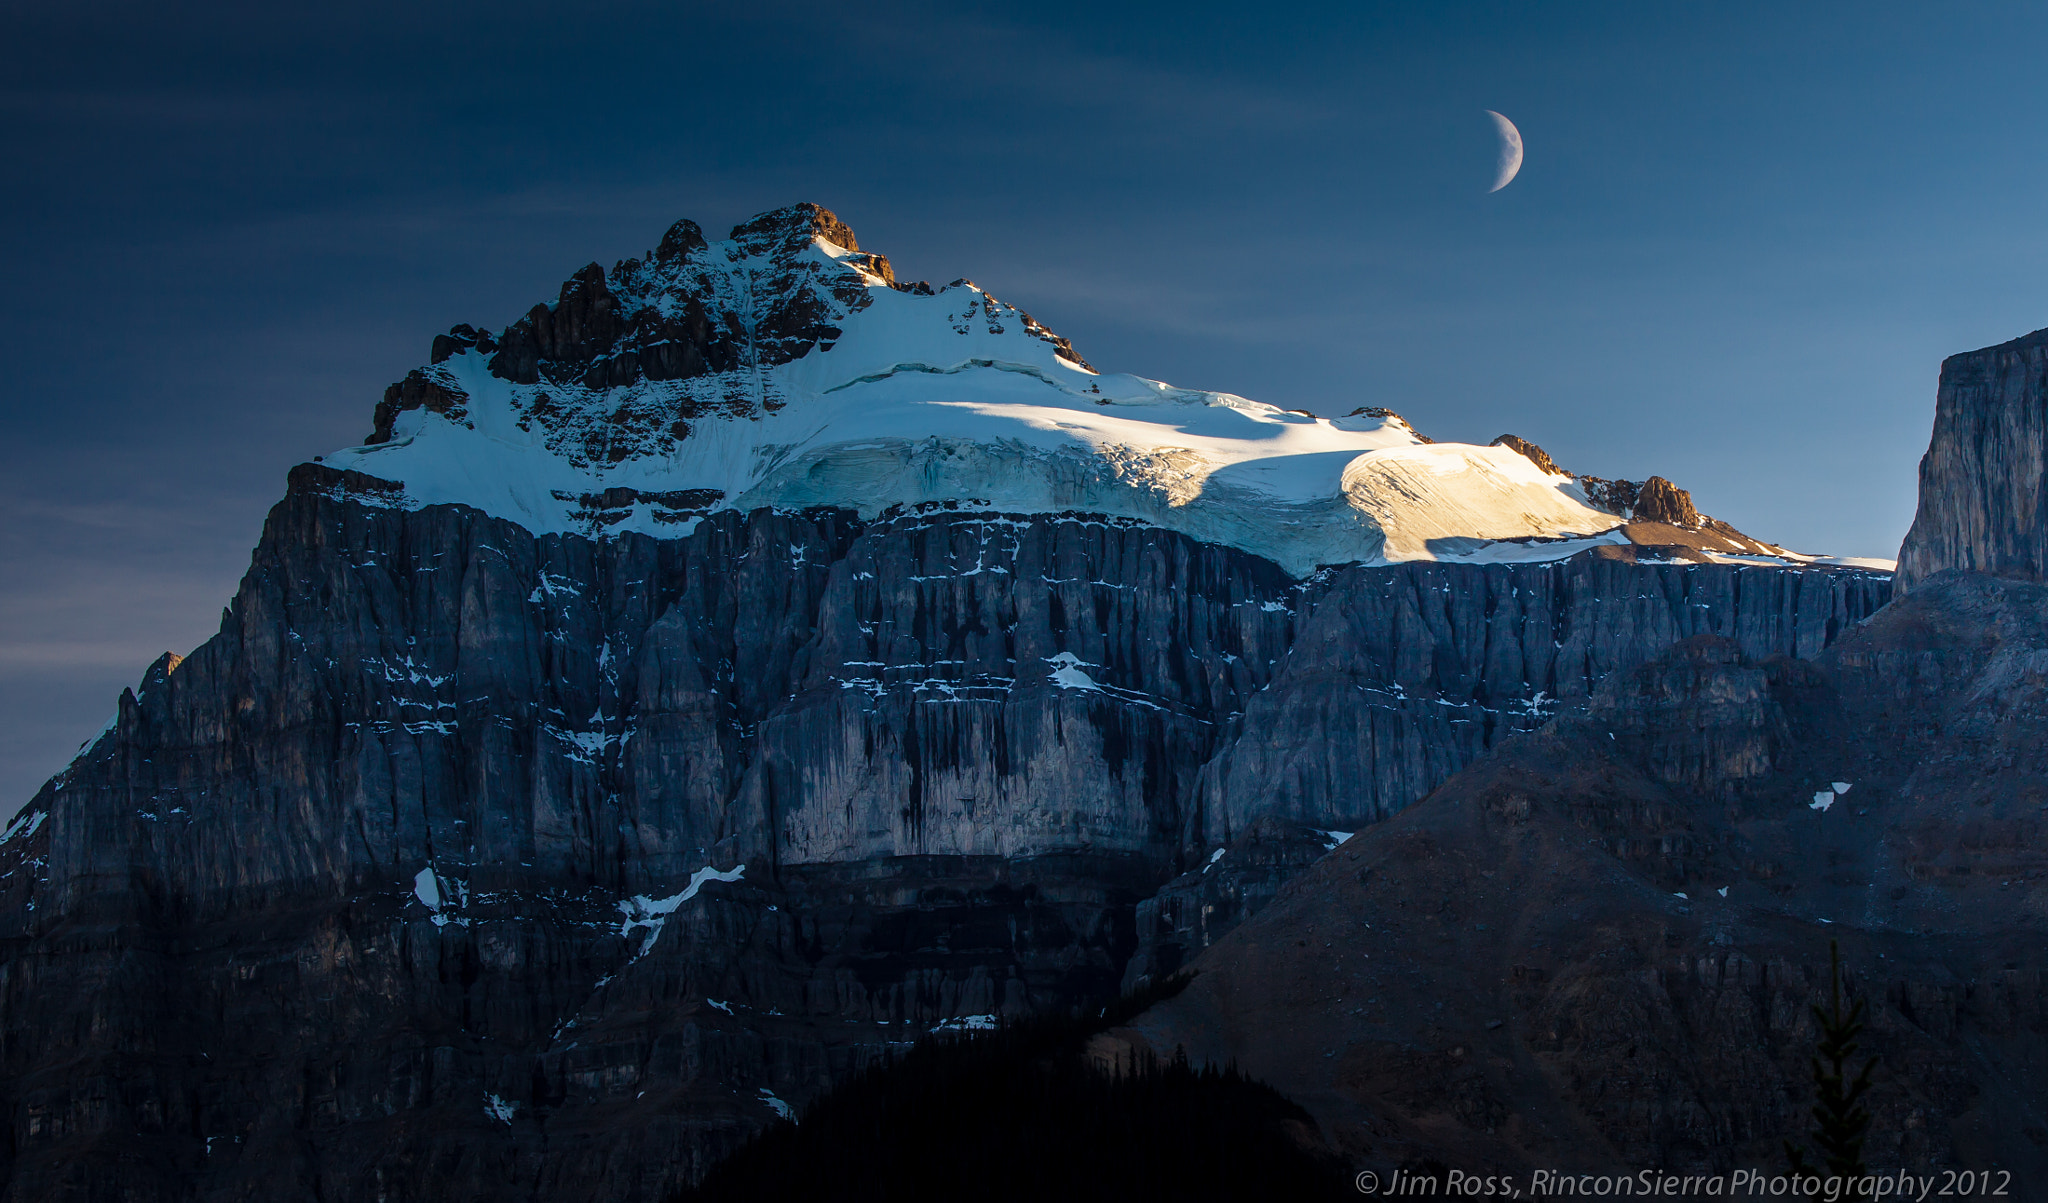 Photograph Moonrise Over Icefields Parkway!!! (Part I, Day 1) by Jim Ross on 500px